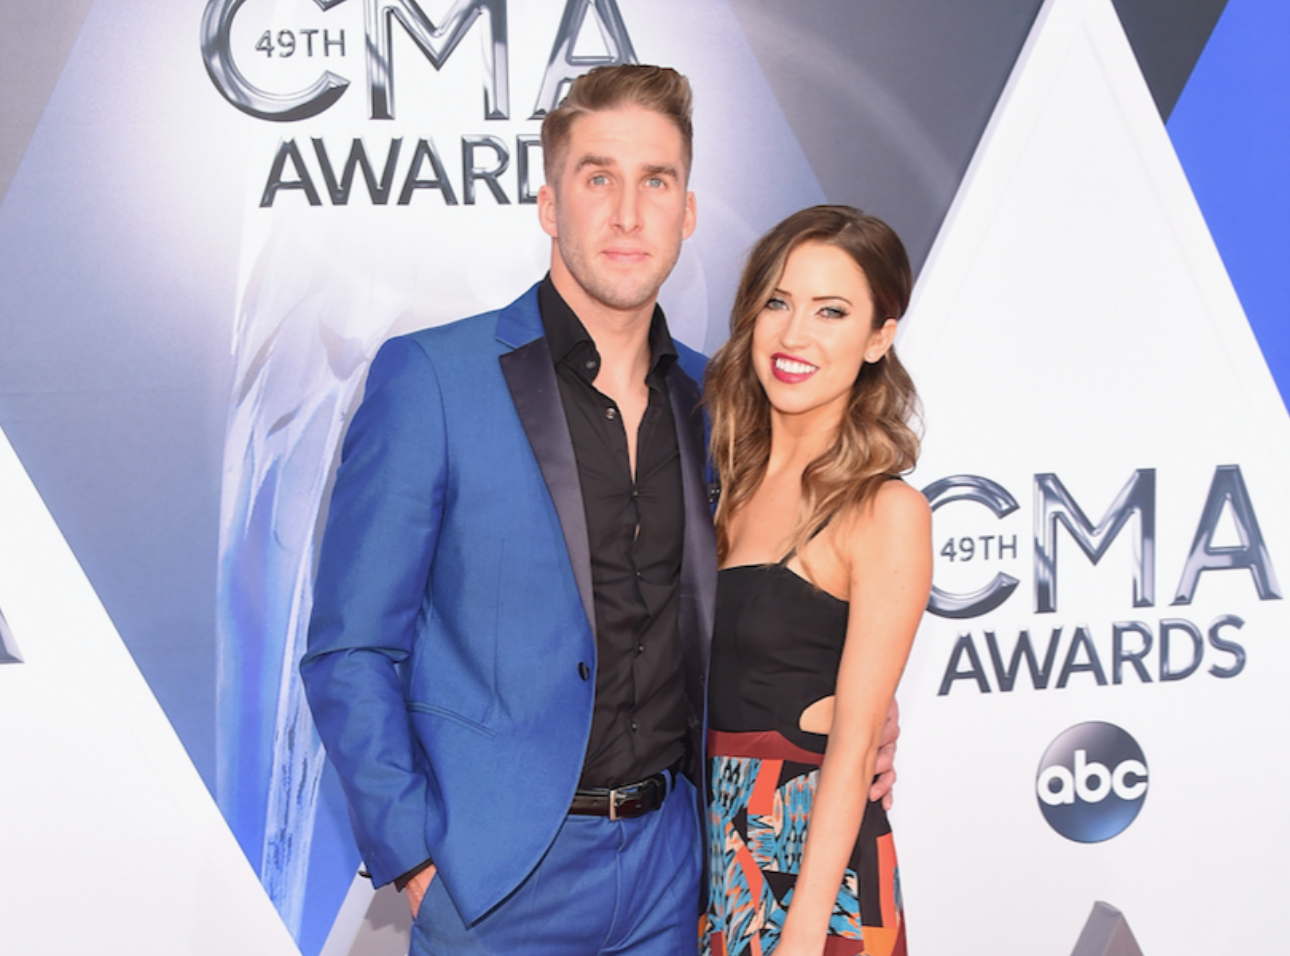 Kaitlyn Bristowe Speaks On Shawn Booth Split Rumors